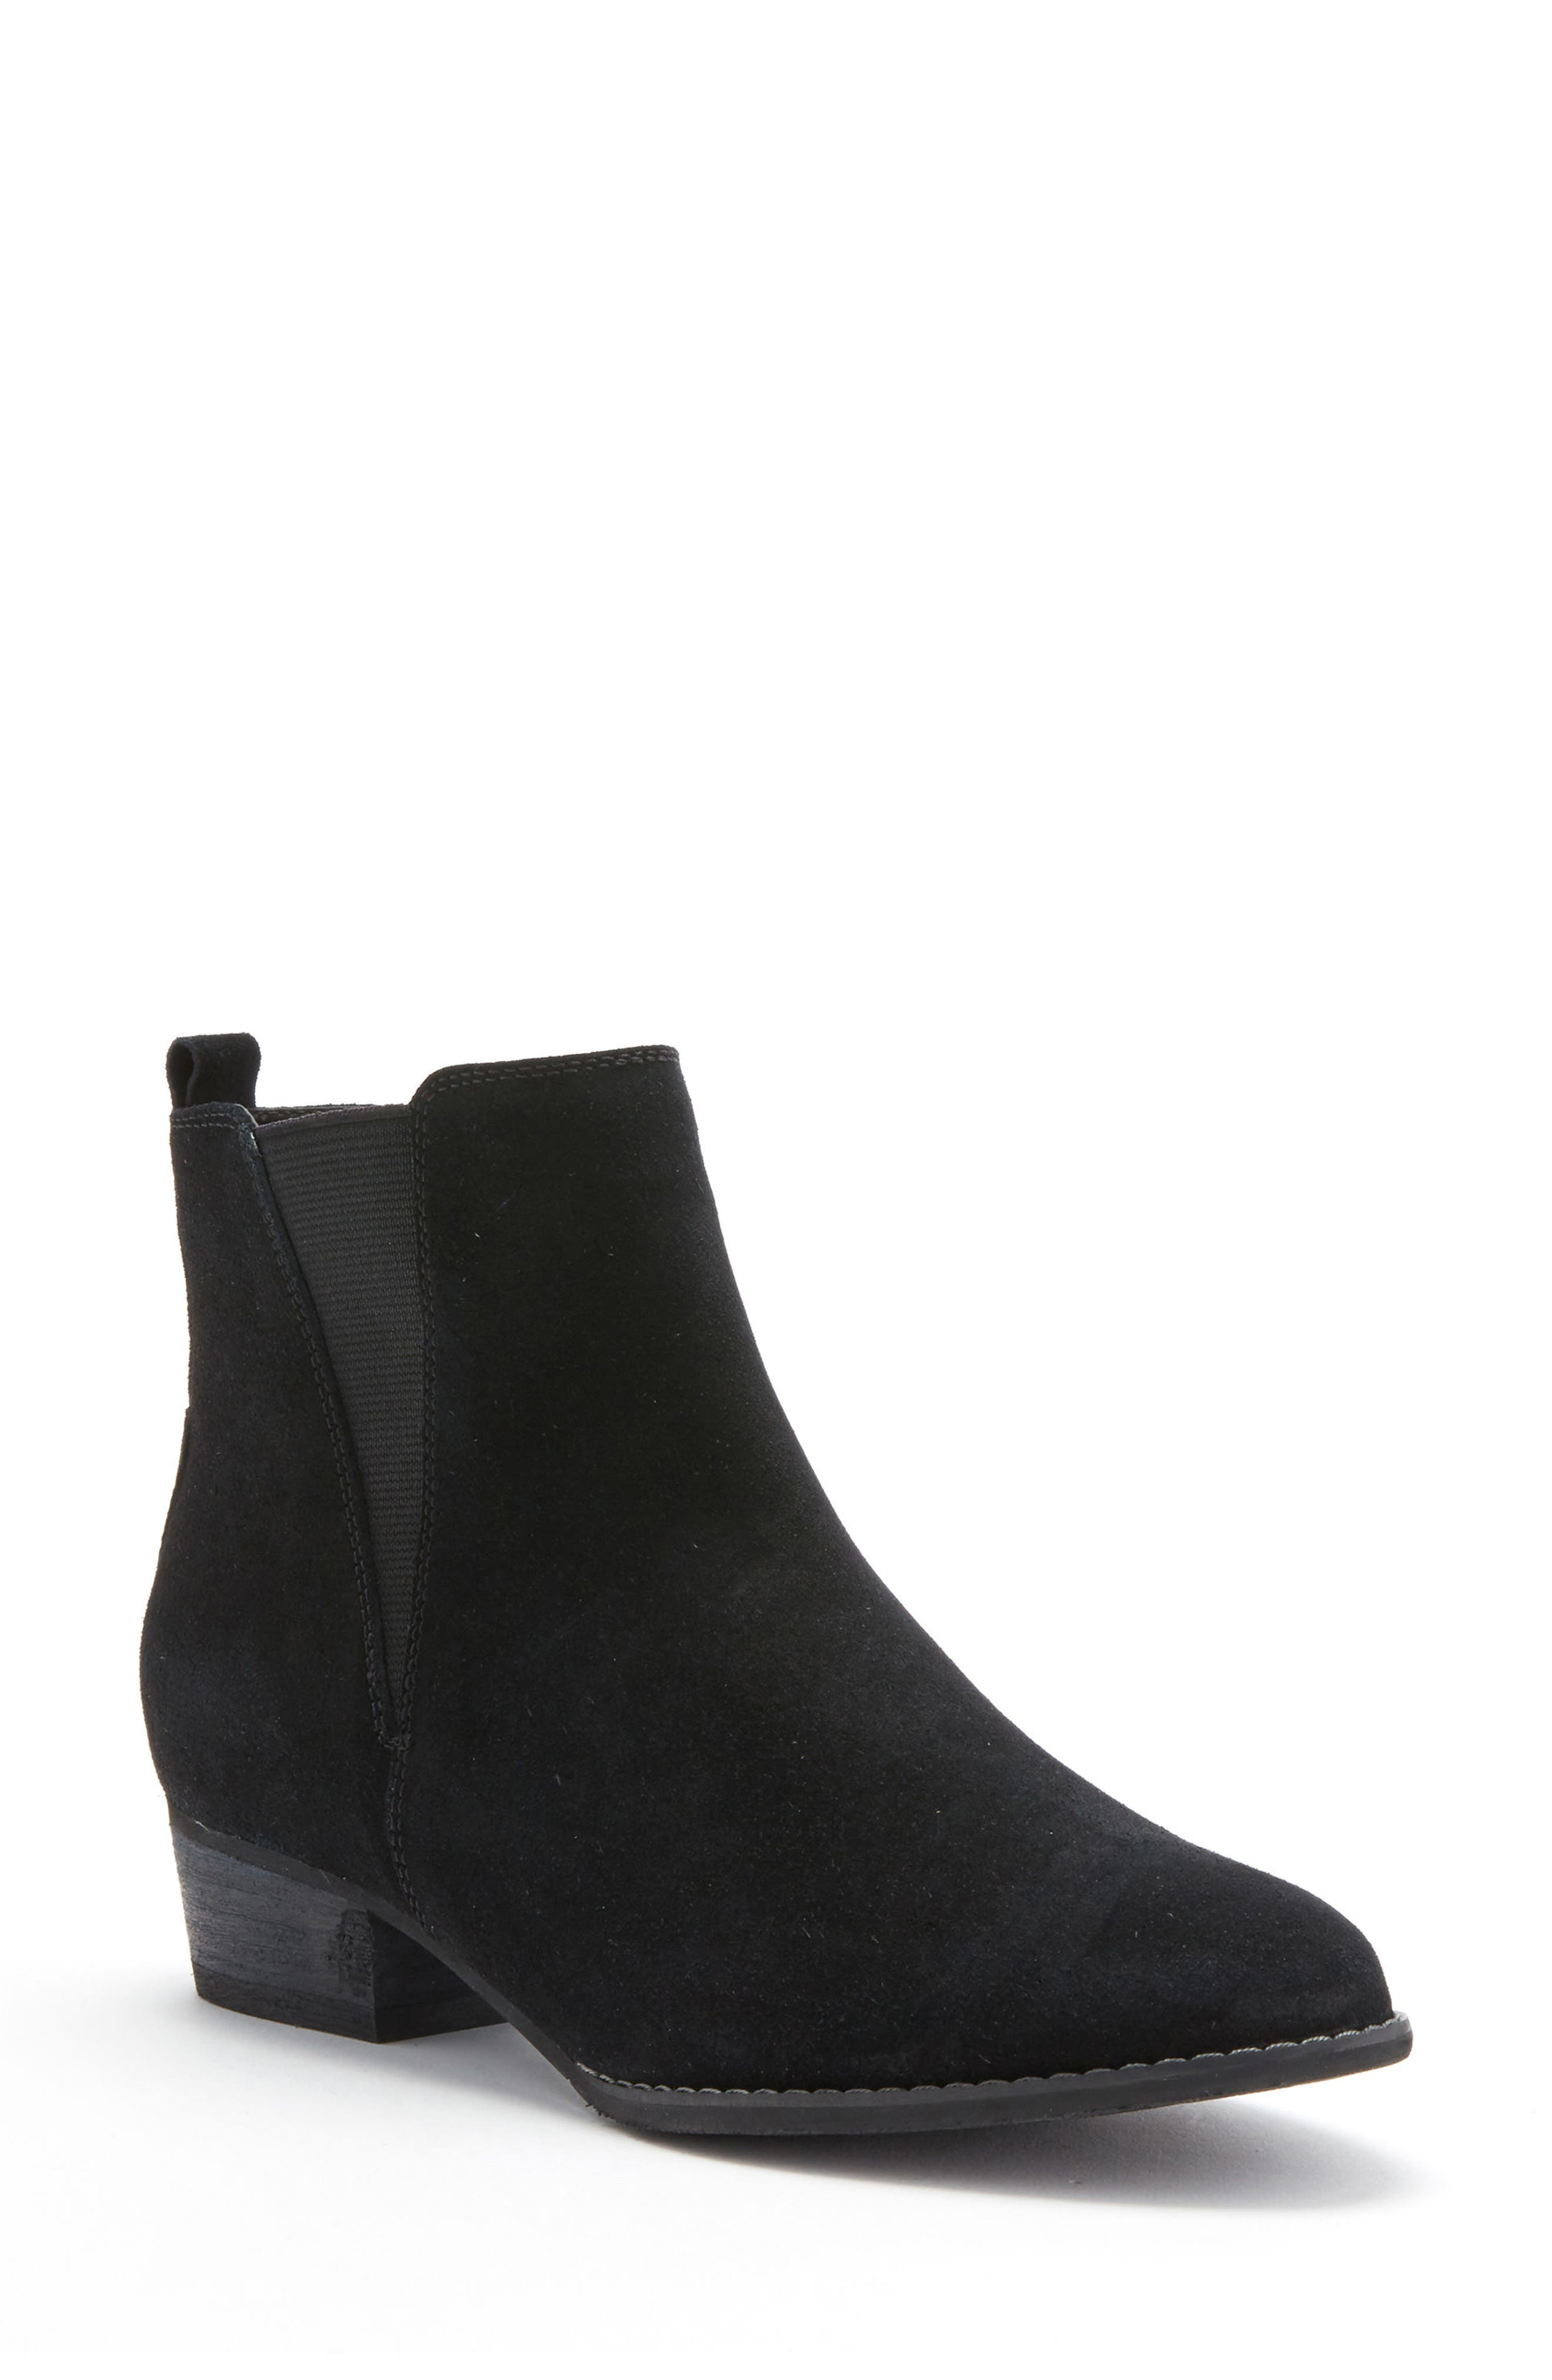 Loxx Waterproof Bootie,                             Main thumbnail 1, color,                             006